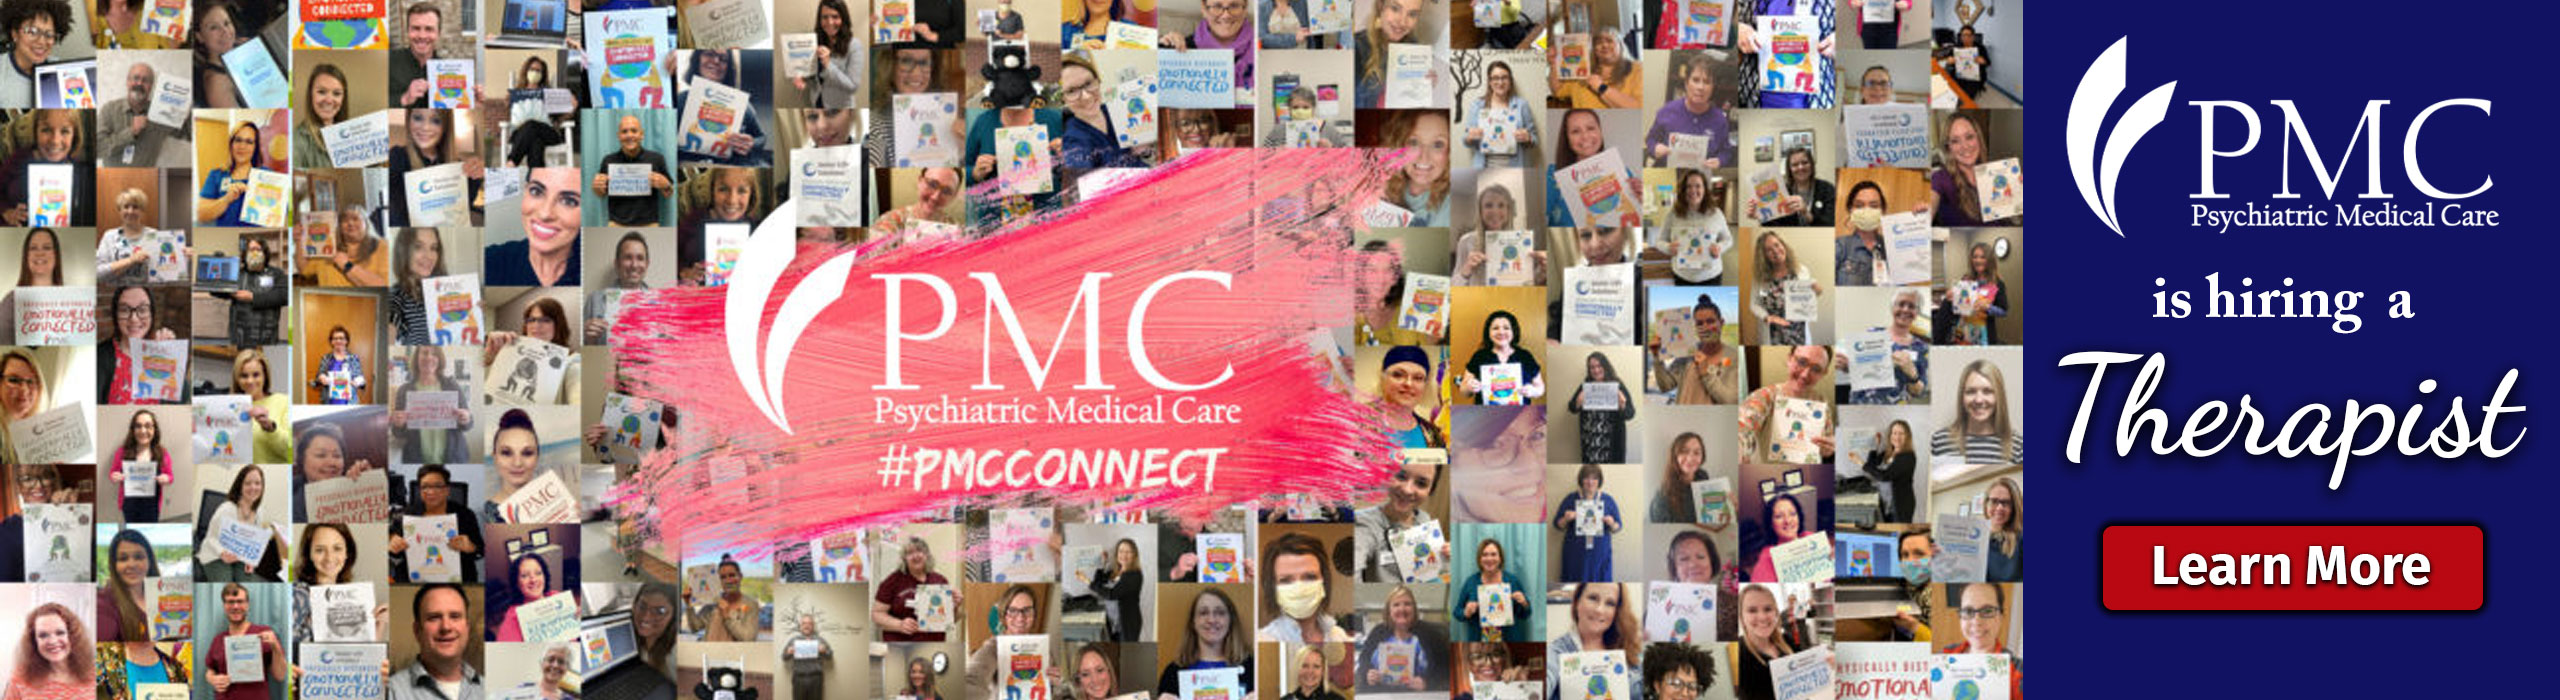 PMC is hiring a Therapist. Learn More